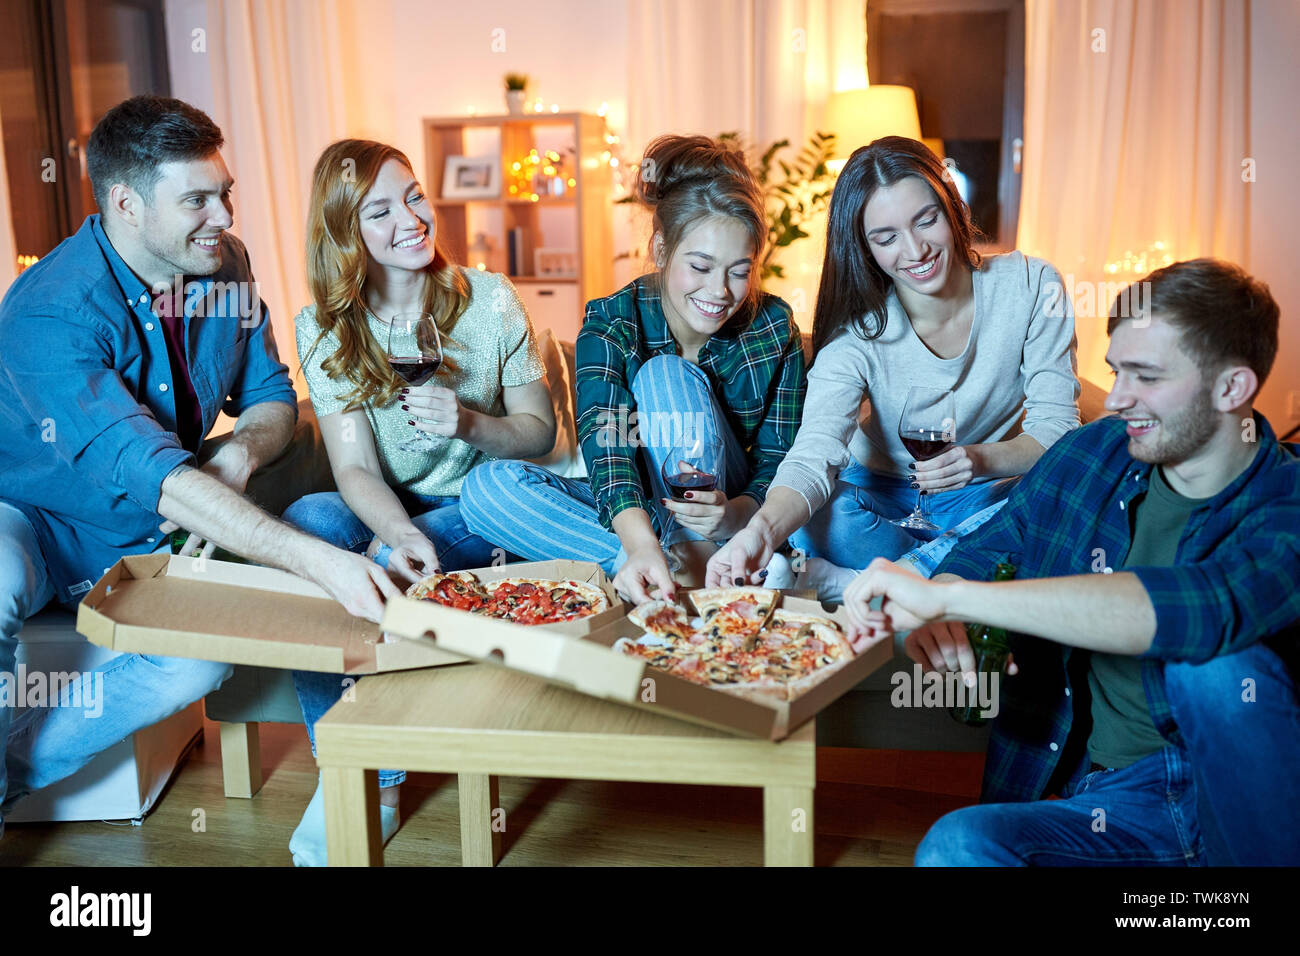 friends eating pizza and drinking red wine at home - Stock Image